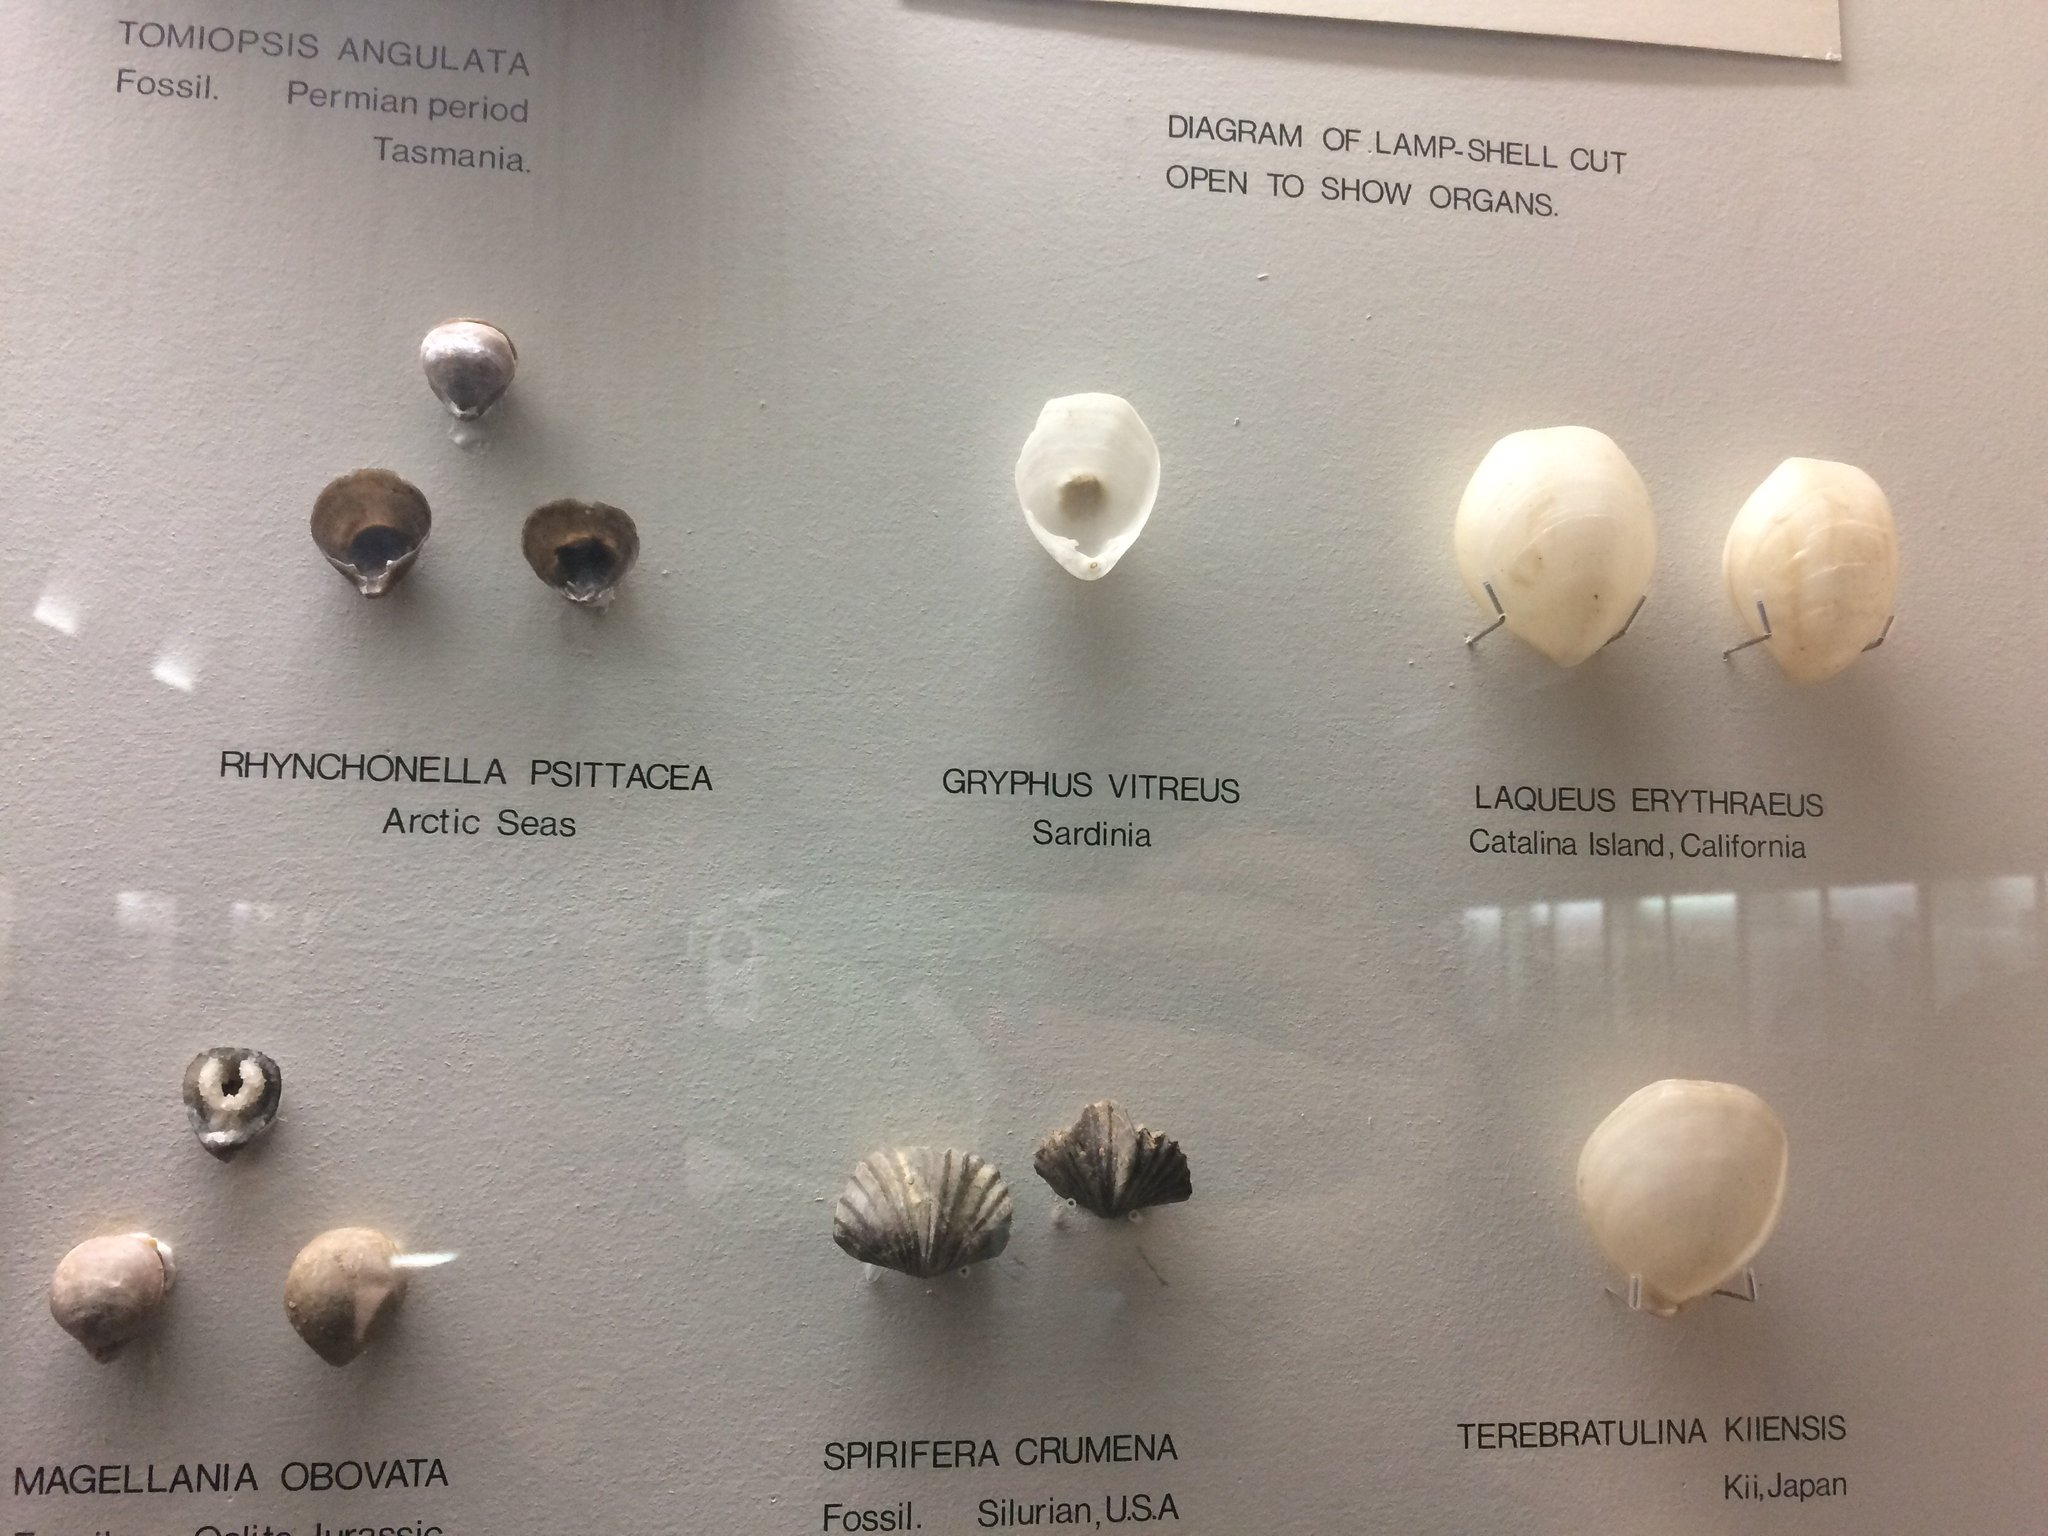 Six white shells for the House of Westerling. Retweet if you're team Westerling! #stoptryingtomakewesterlinghappen #takeoverday https://t.co/NQ8i0efoTi